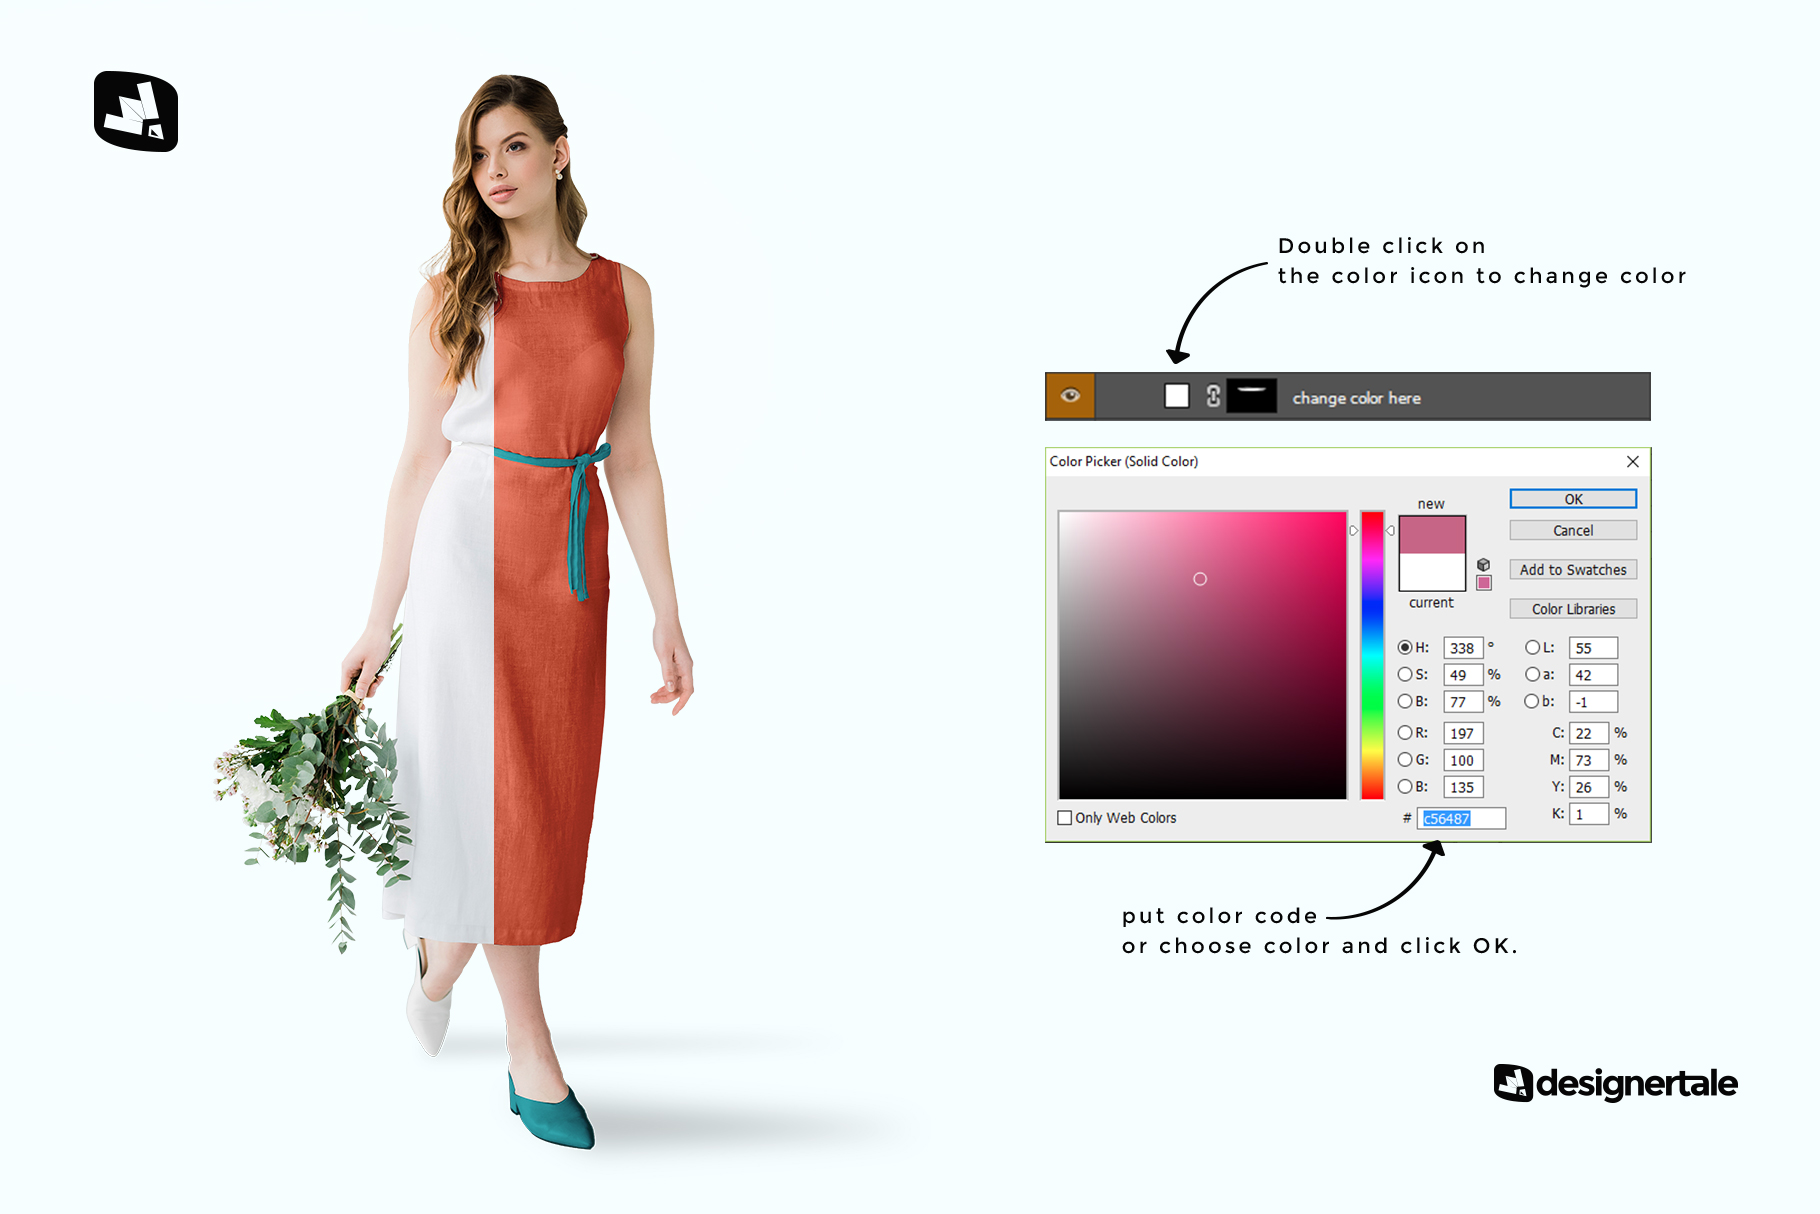 how to change color of the female cotton summer dress mockup